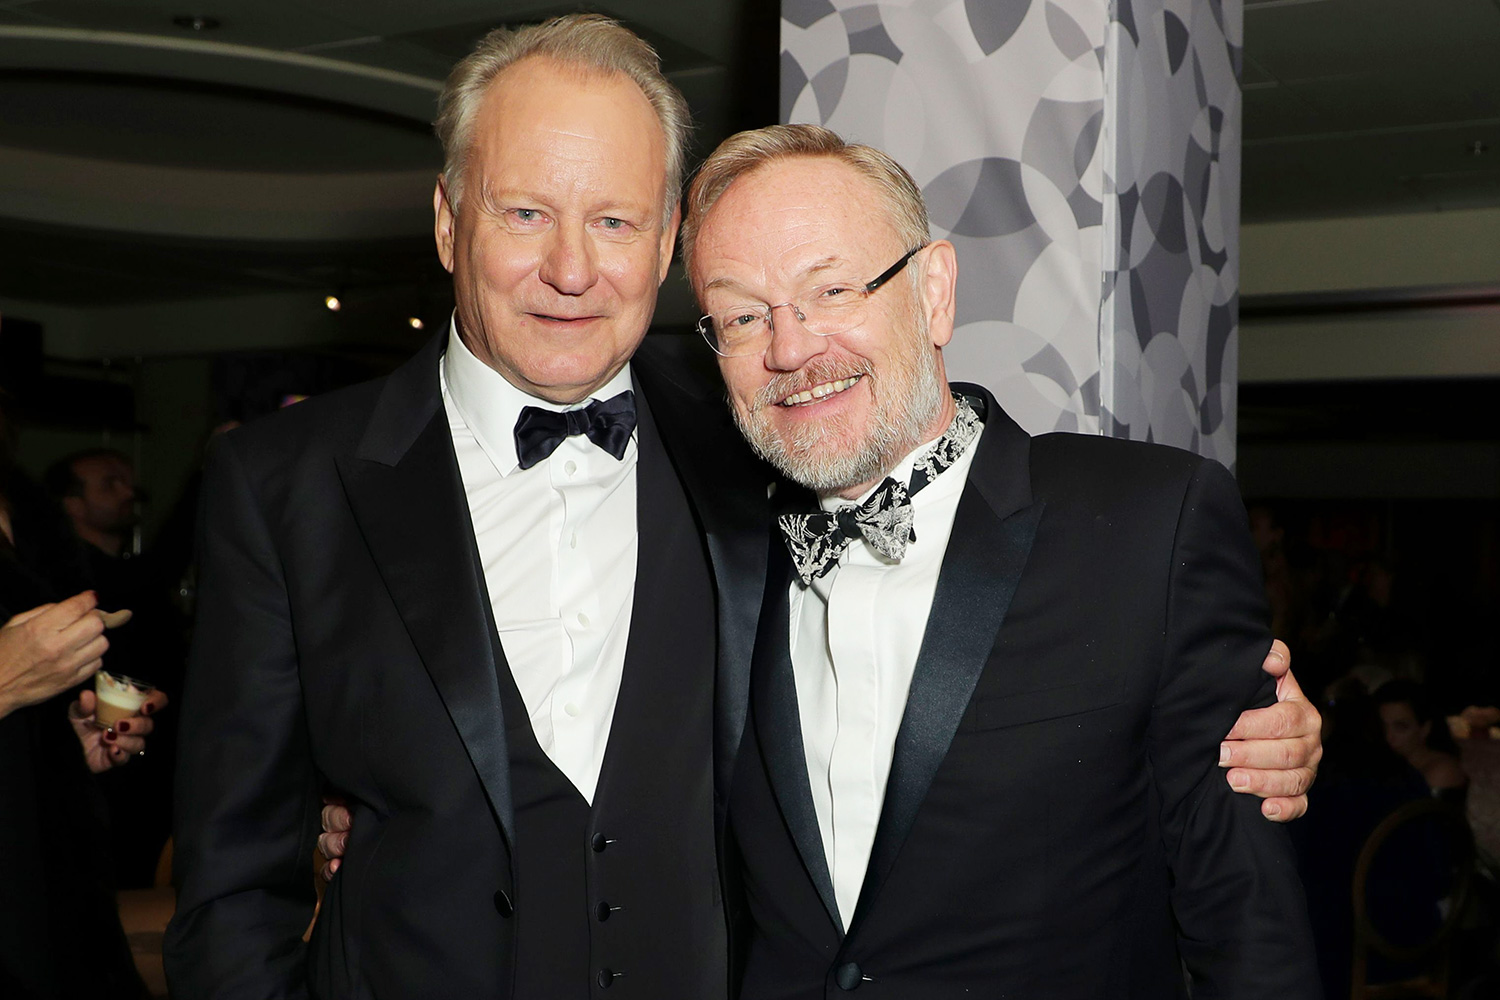 Stellan Skarsgard and Jared Harris